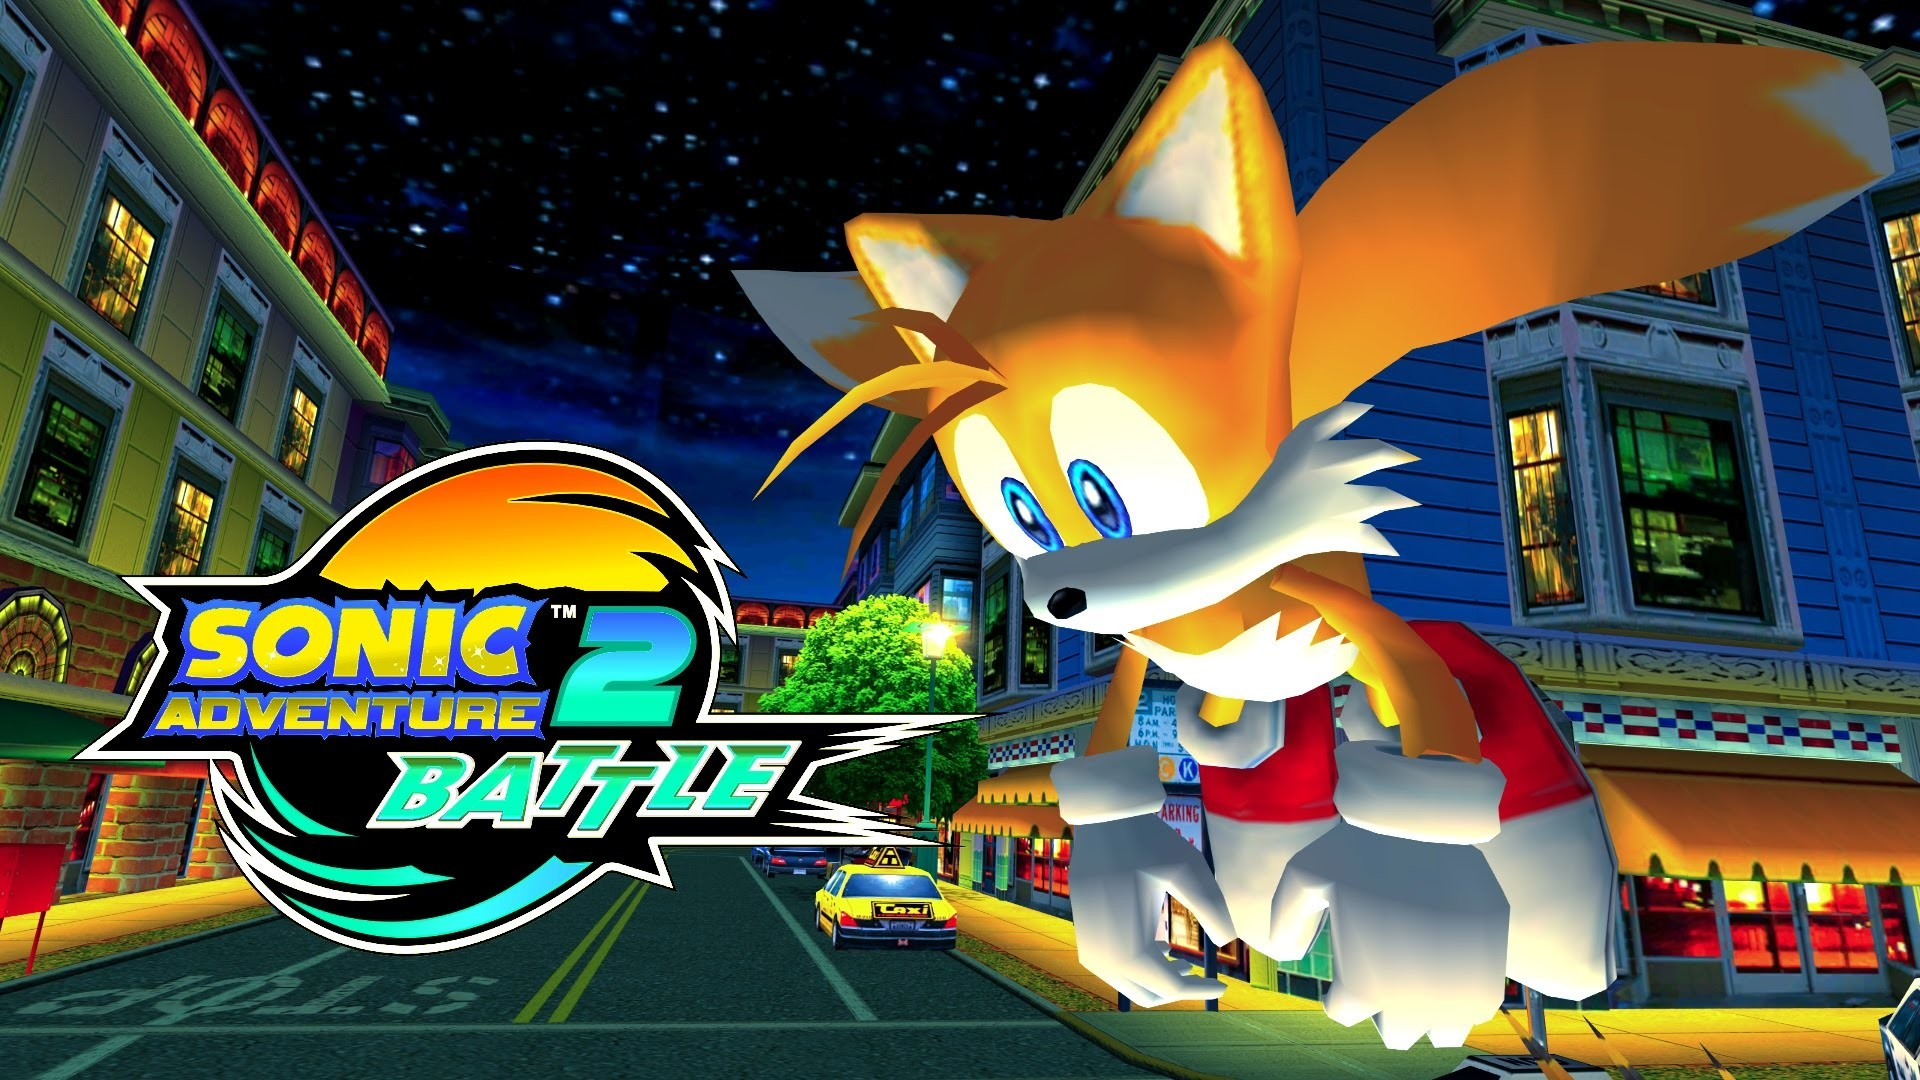 1920x1080 Sonic Adventure 2: Battle - Mission Street - MECHLESS TAILS [REAL Full HD,  Widescreen] 60 FPS - YouTube